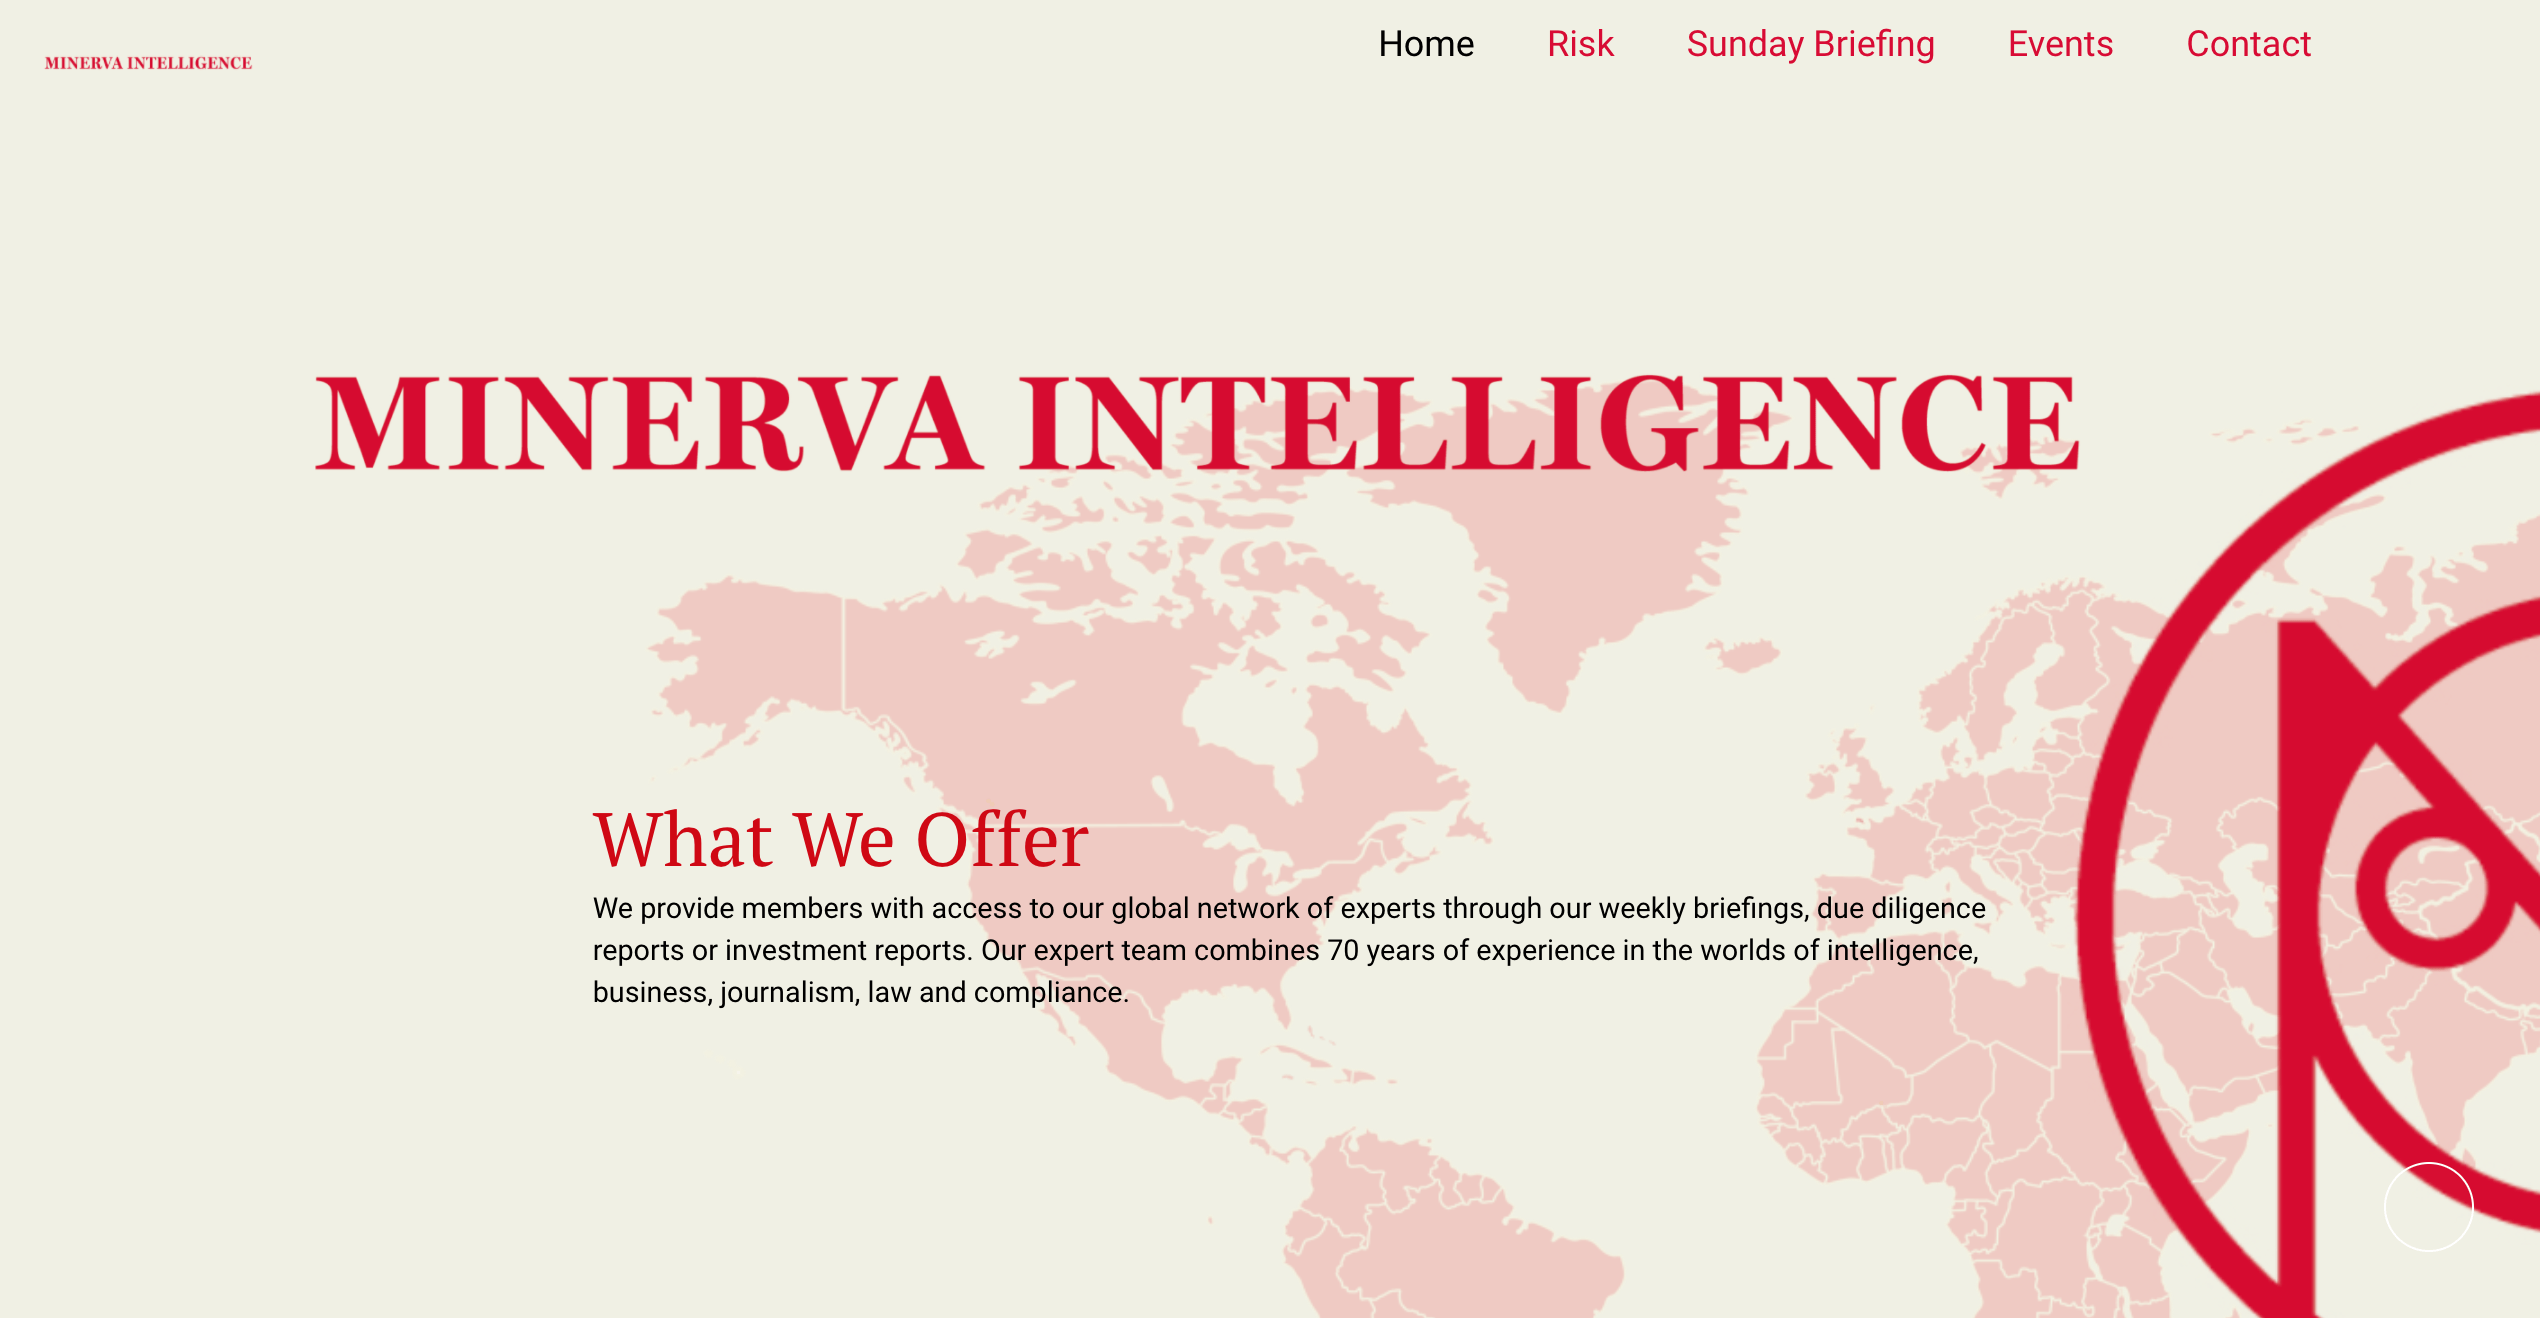 Minerva Intelligence